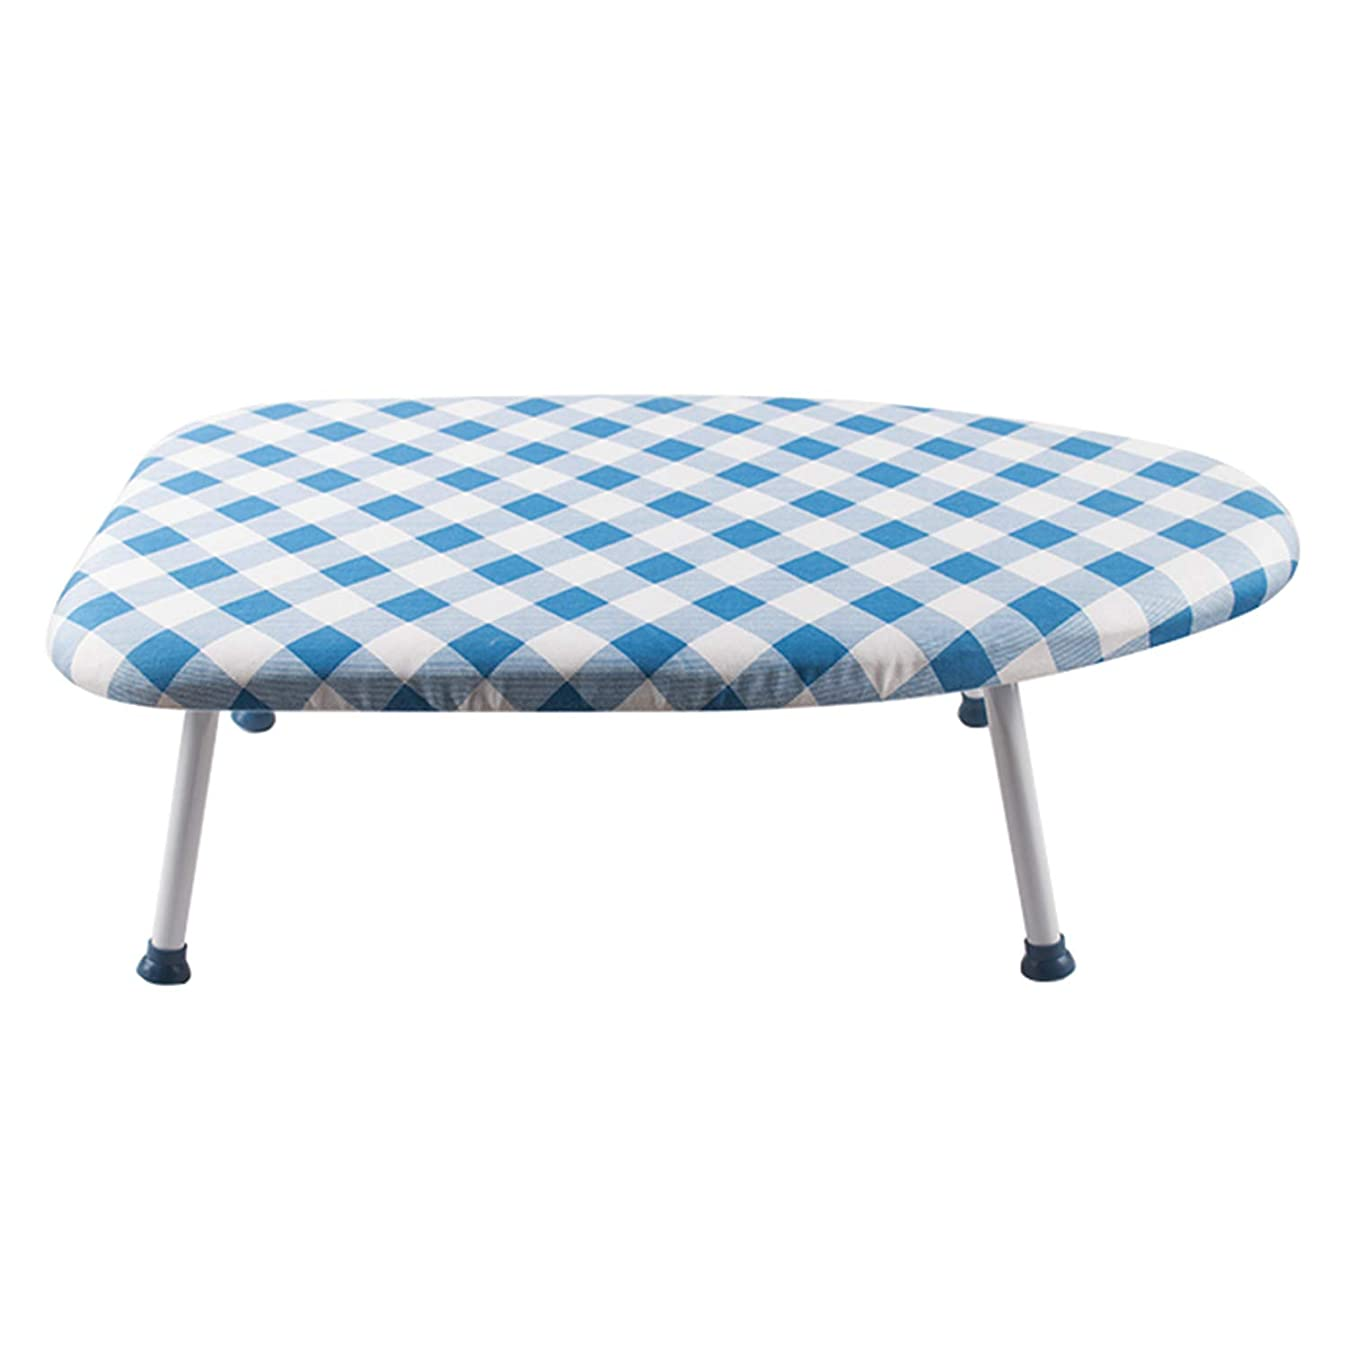 Berry Ave Tabletop Ironing Board – Table Ironing Board with Foldable Non-Slip Legs – Mini Ironing Board with Washable Cover – Portable Ironing Board That's Perfect to Travel with or Use Room to Room